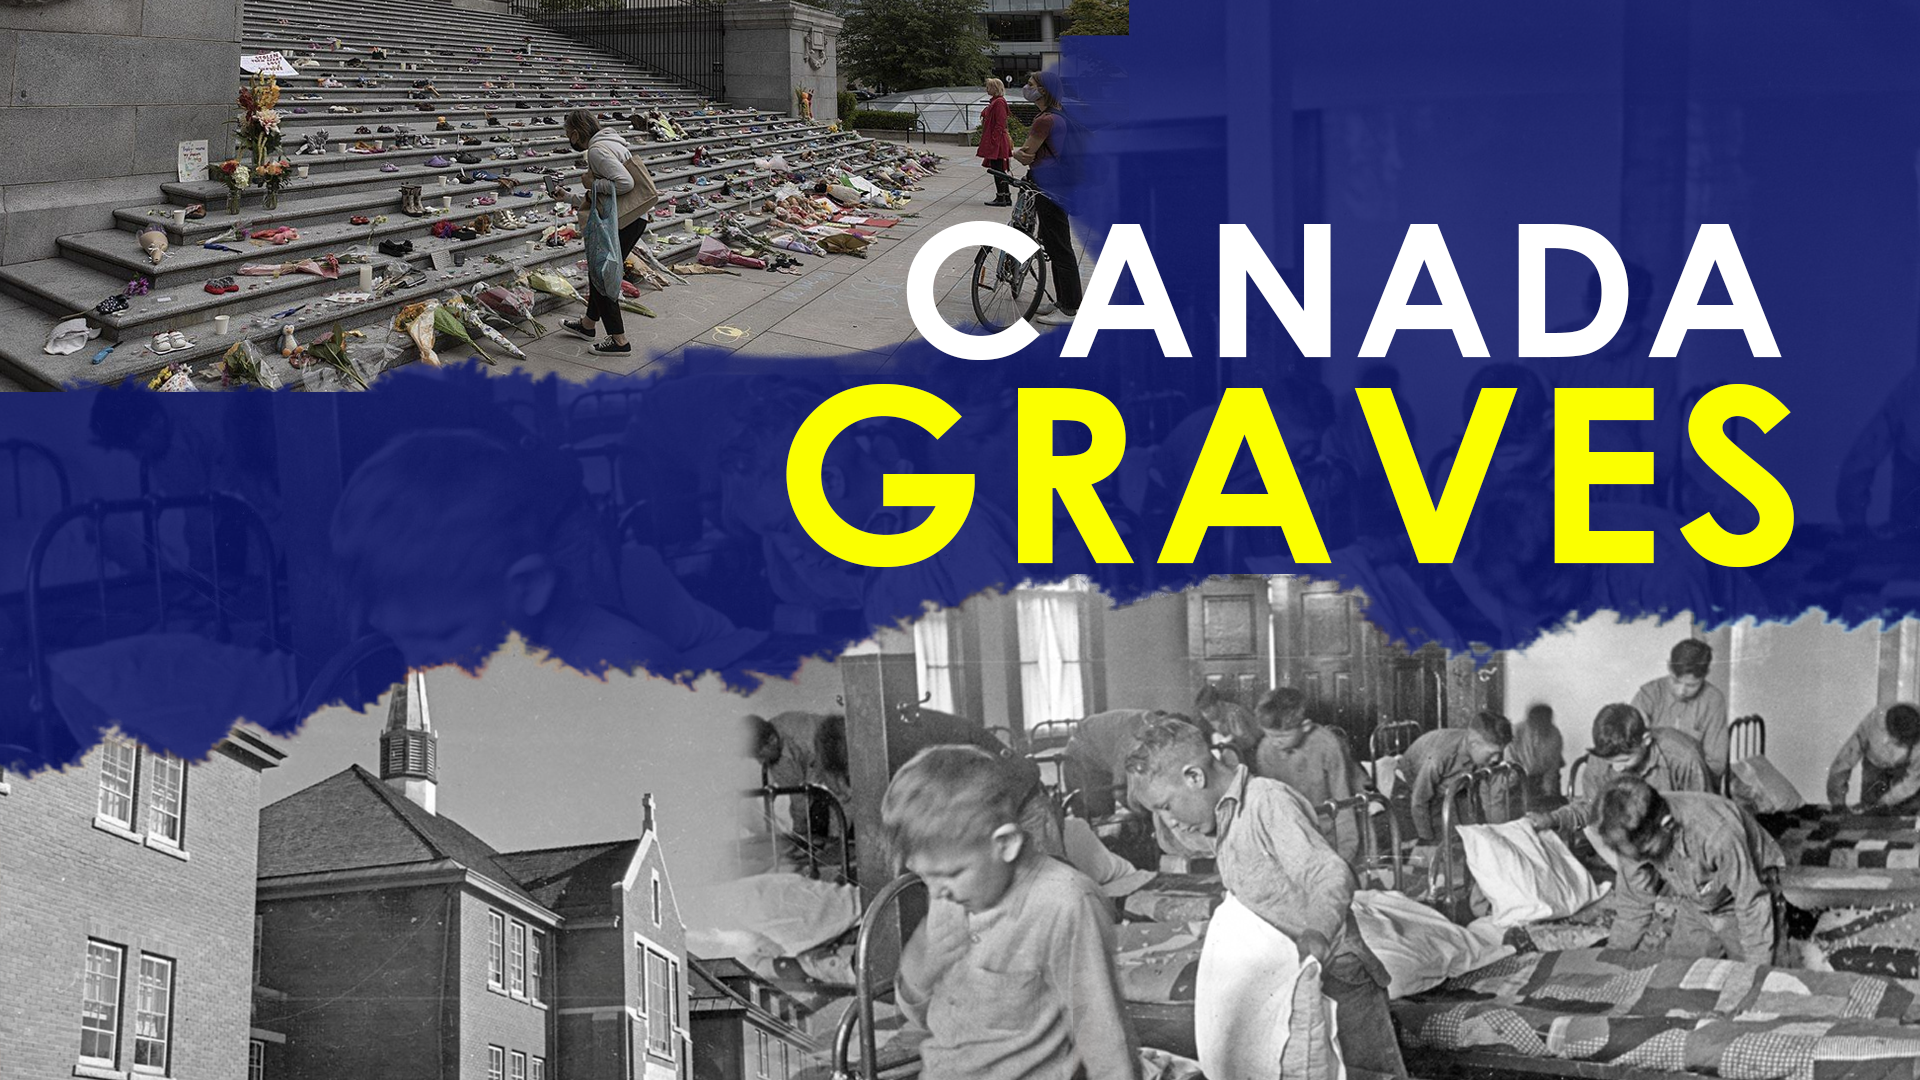 Canada graves